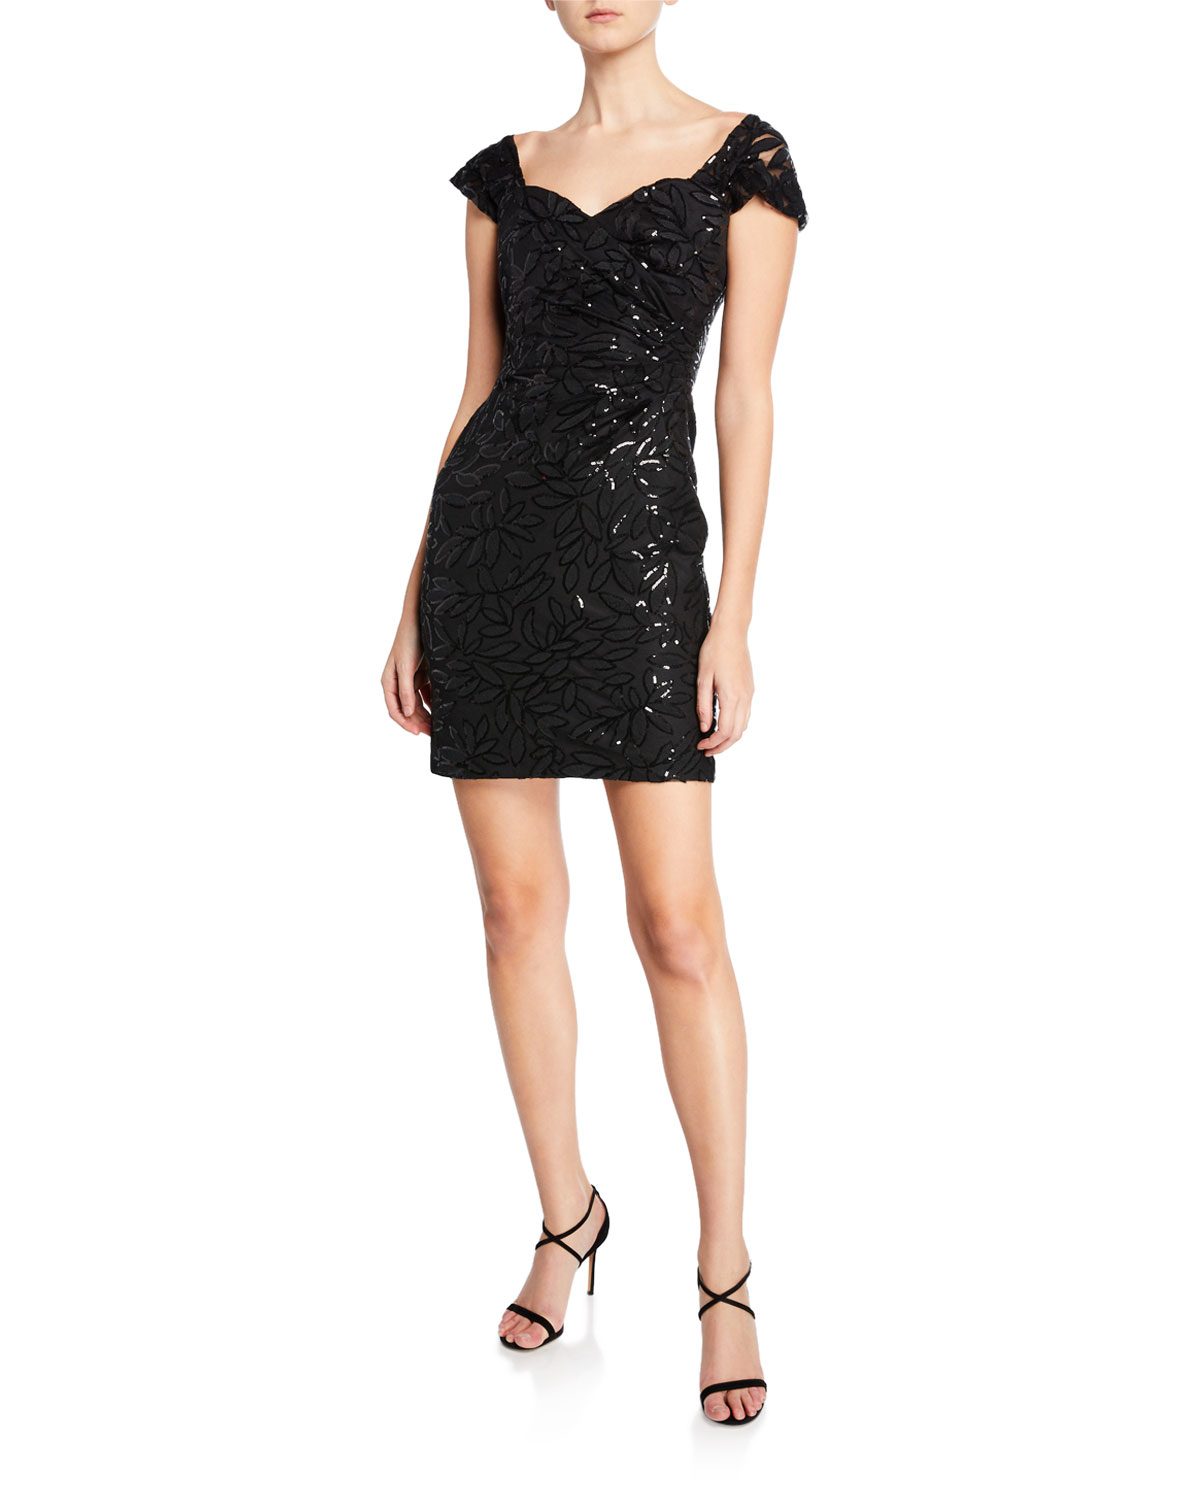 Milly Tina Sweetheart Cap-Sleeve Embroidered Black Sequin Dress